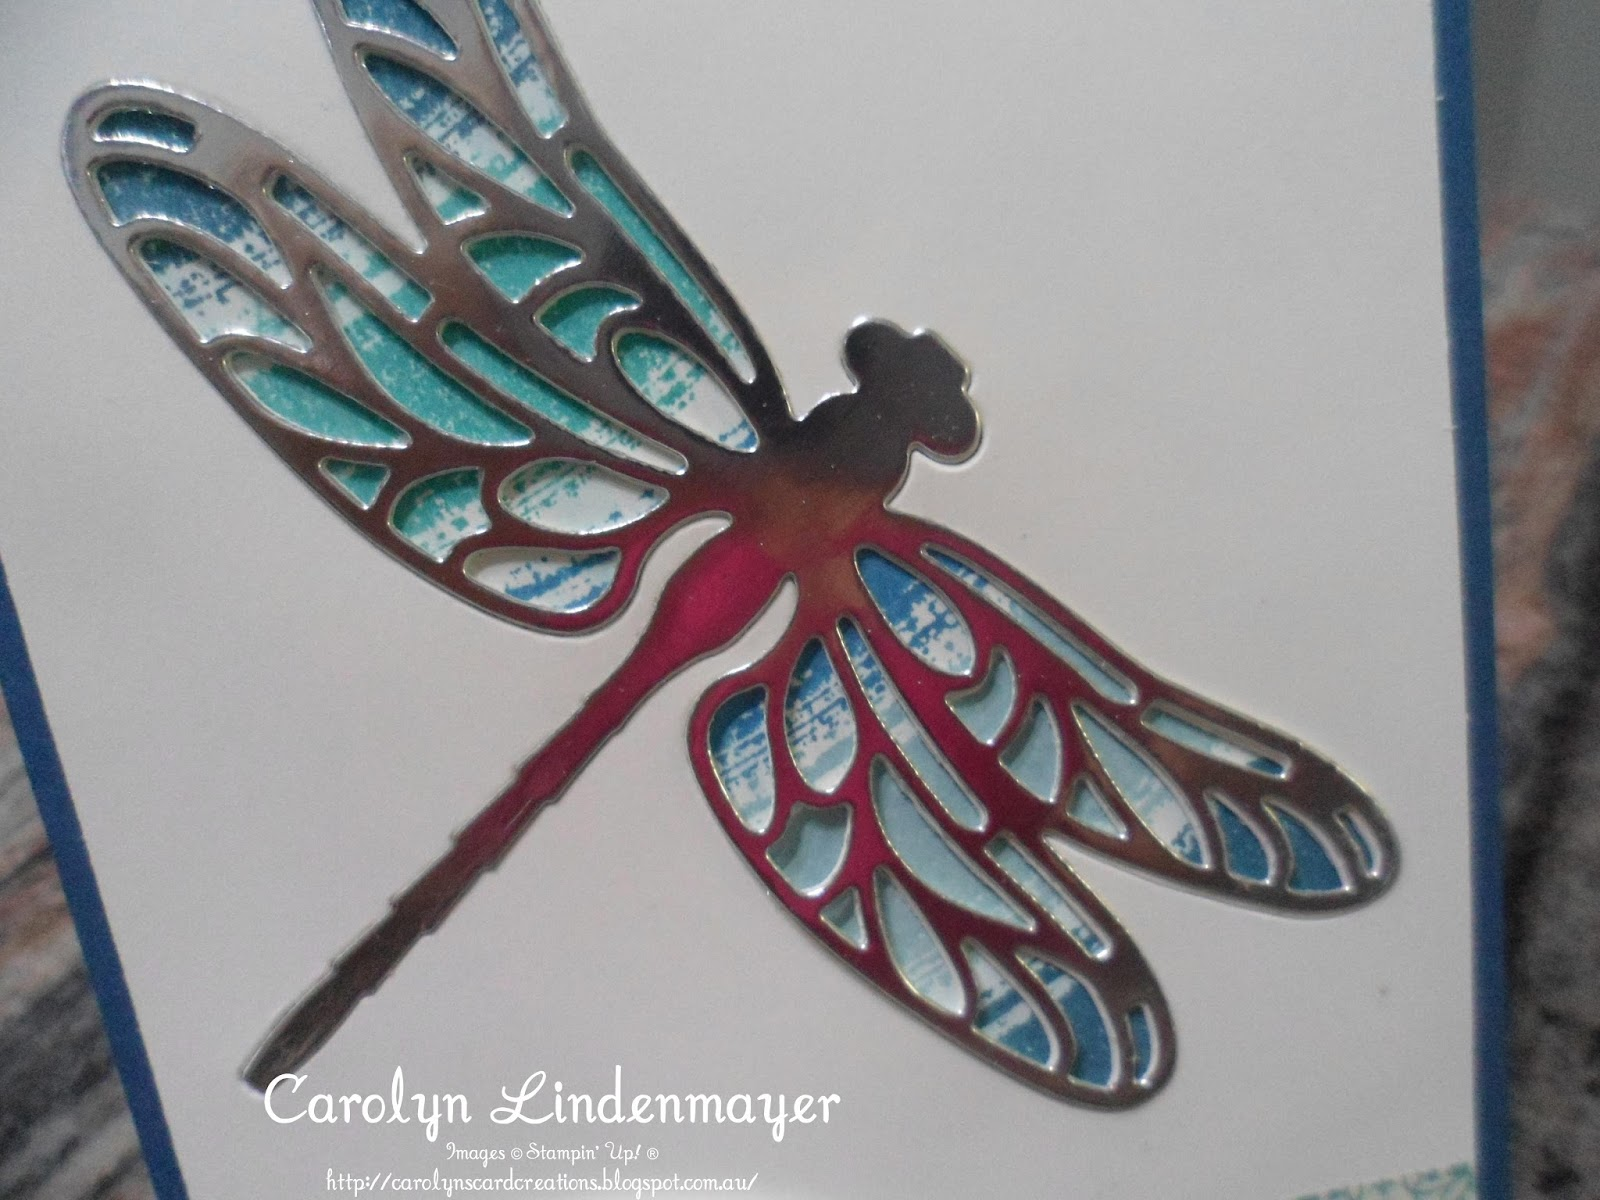 Paper craft crew 226 dragonfly birthday looking forward to you joining us for this challenge at the paper craft crew the gallery is going to be amazing have a great day jeuxipadfo Gallery